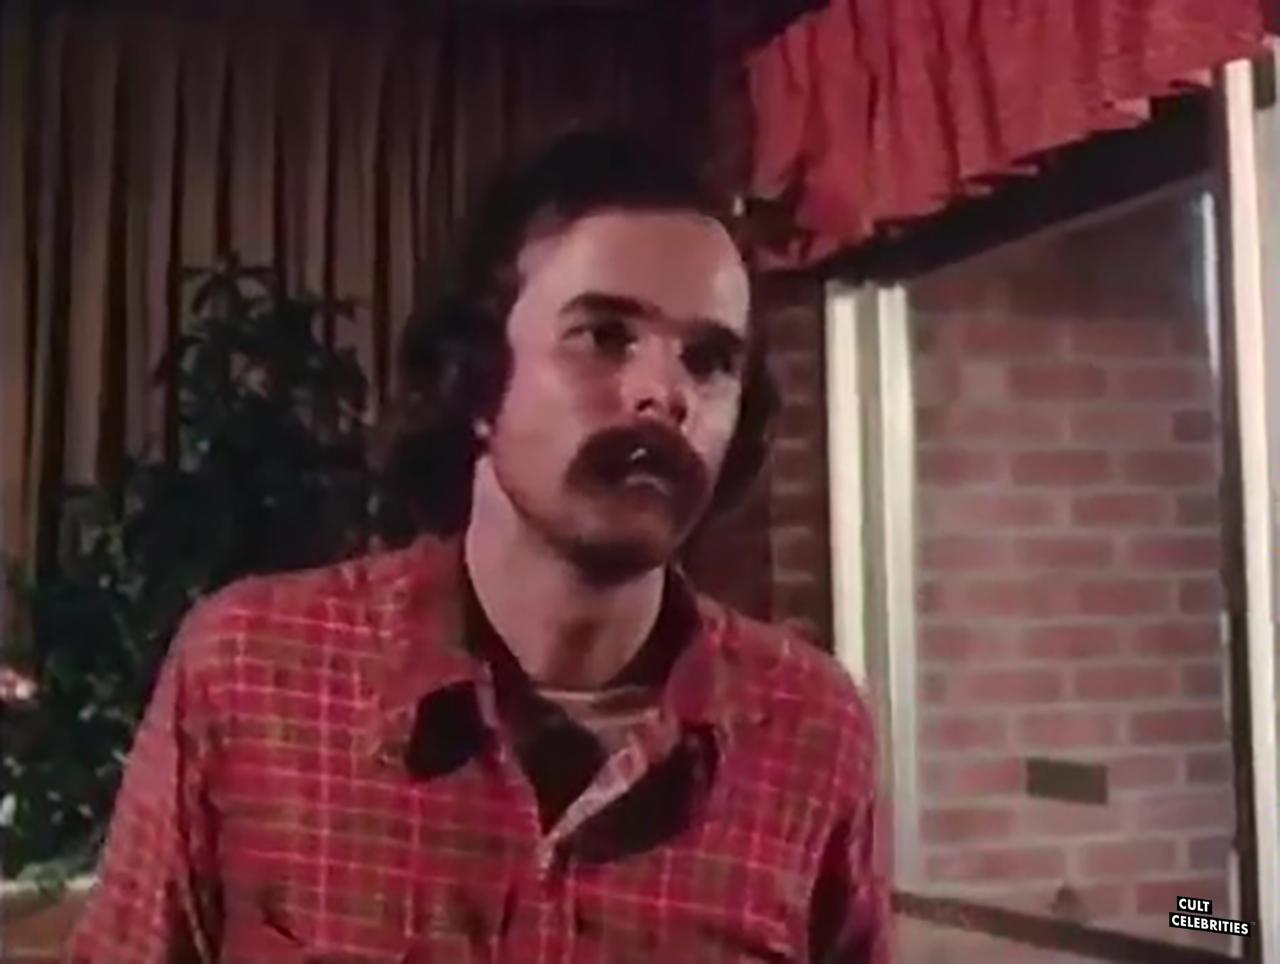 Tommy Lamey as Slick in Psycho from Texas (1975)